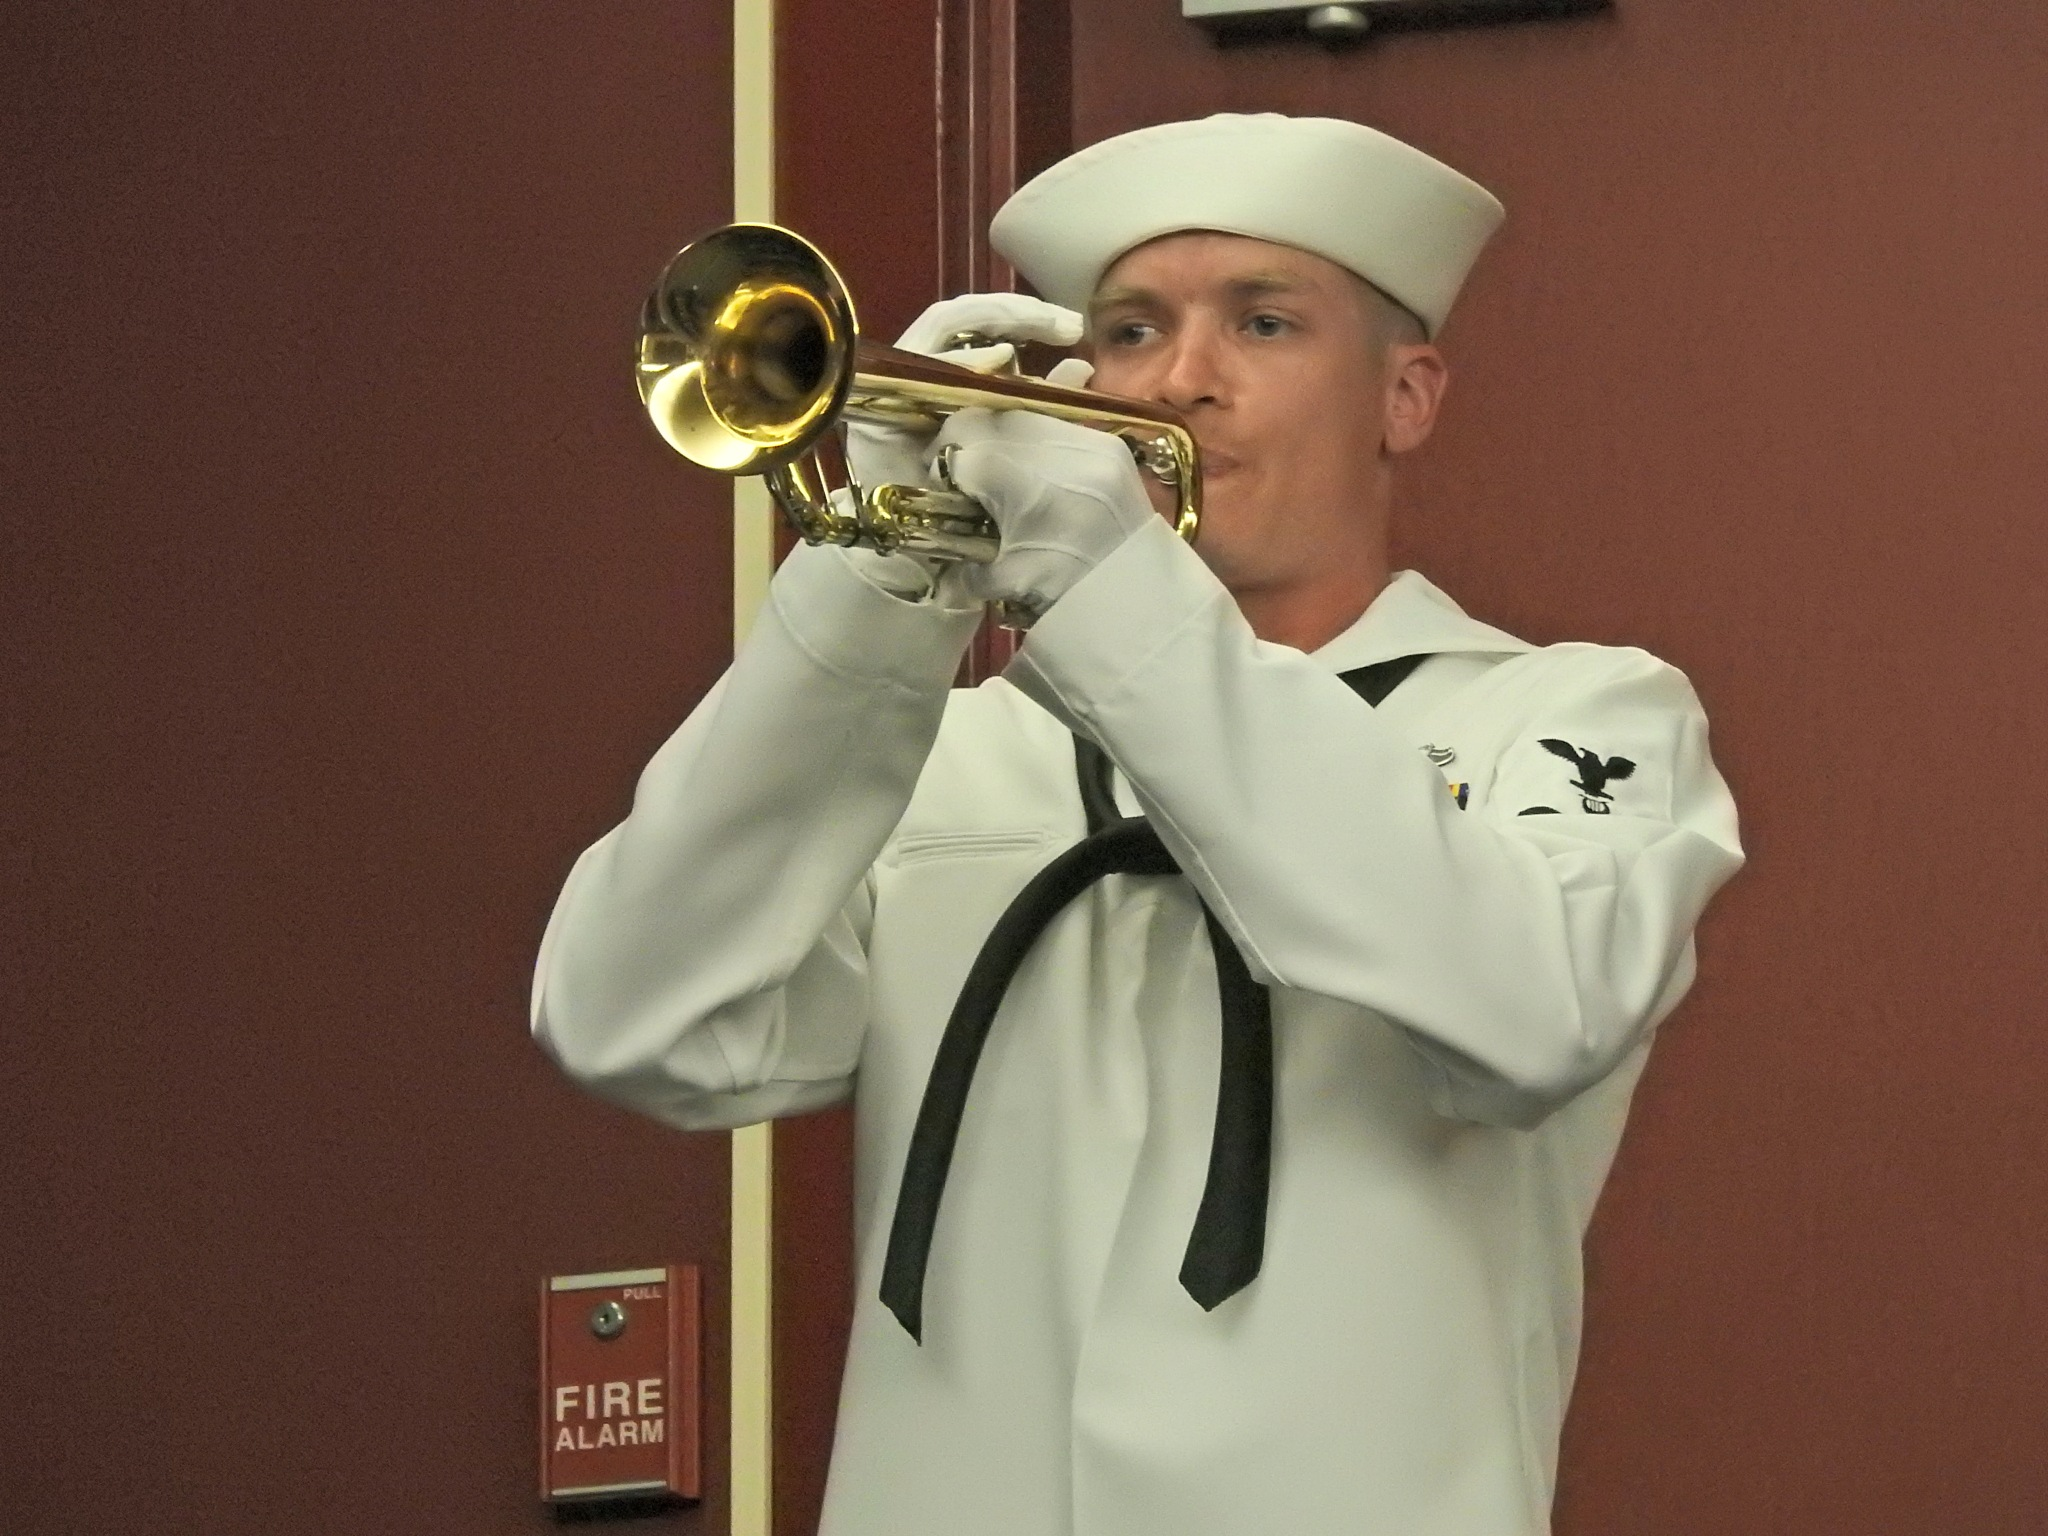 Sailor playing taps by Mat Manes